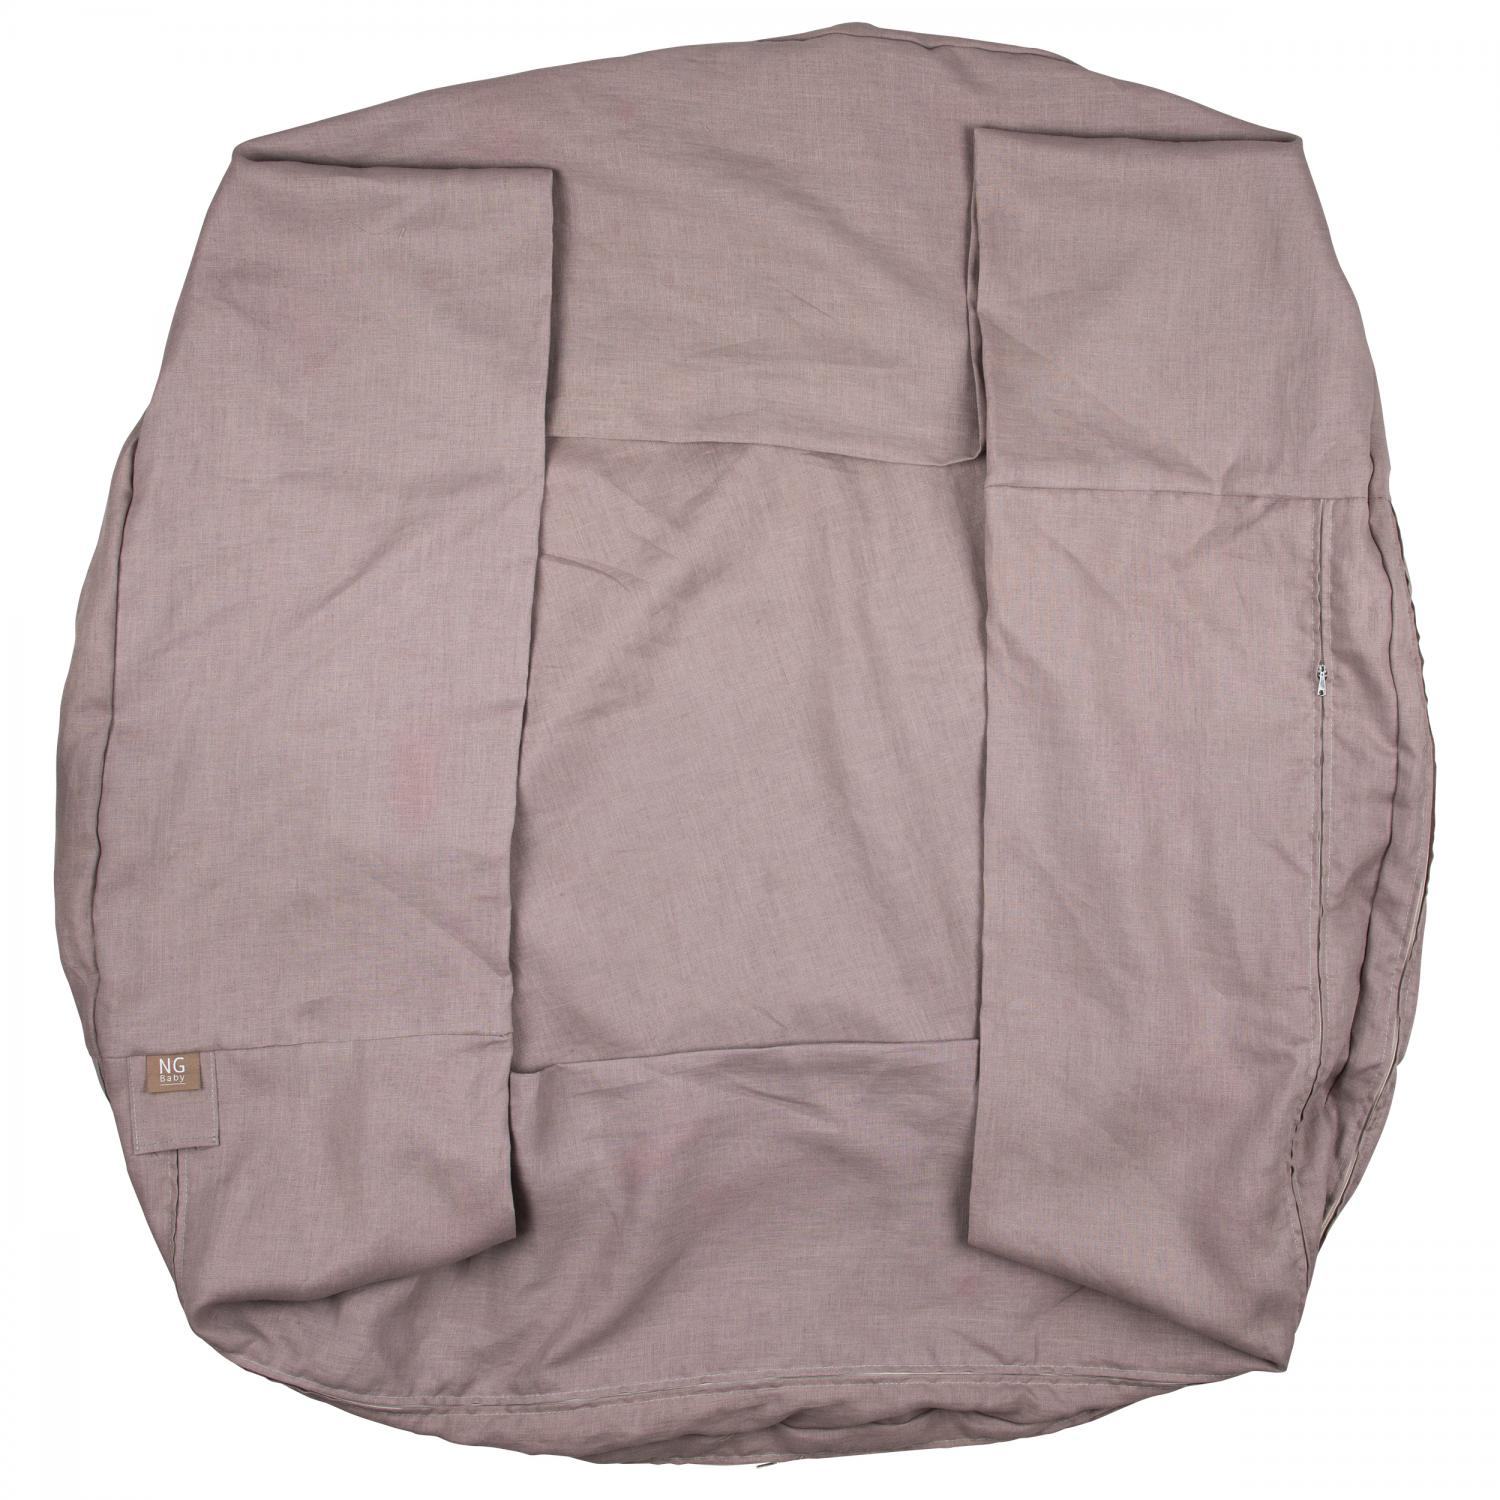 Play nest 120 cm cover   Dusty pink   Mood